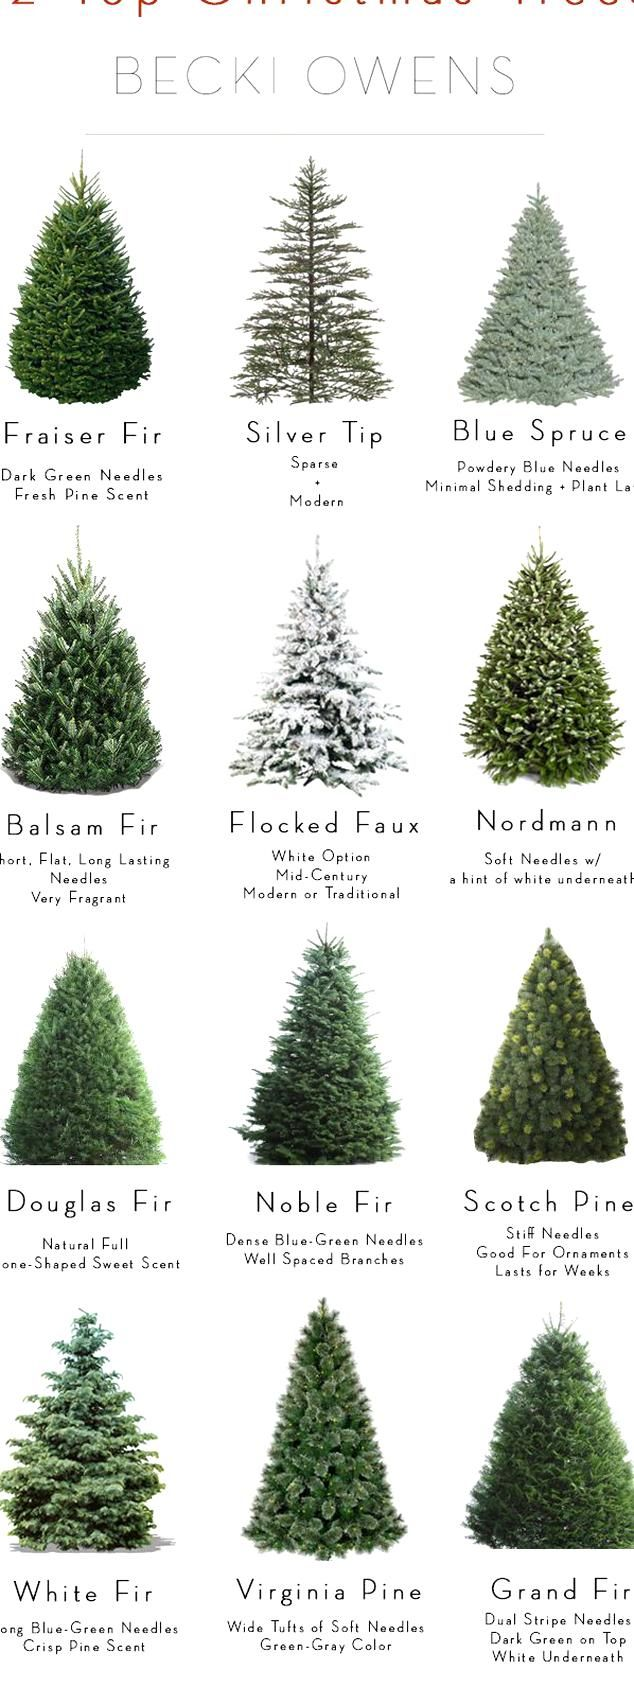 Were Making Christmas Tree Decorating Easy With Inspirations An Introduction To 12 Popular Va In 2020 Types Of Christmas Trees Real Christmas Tree Christmas Tree Guide